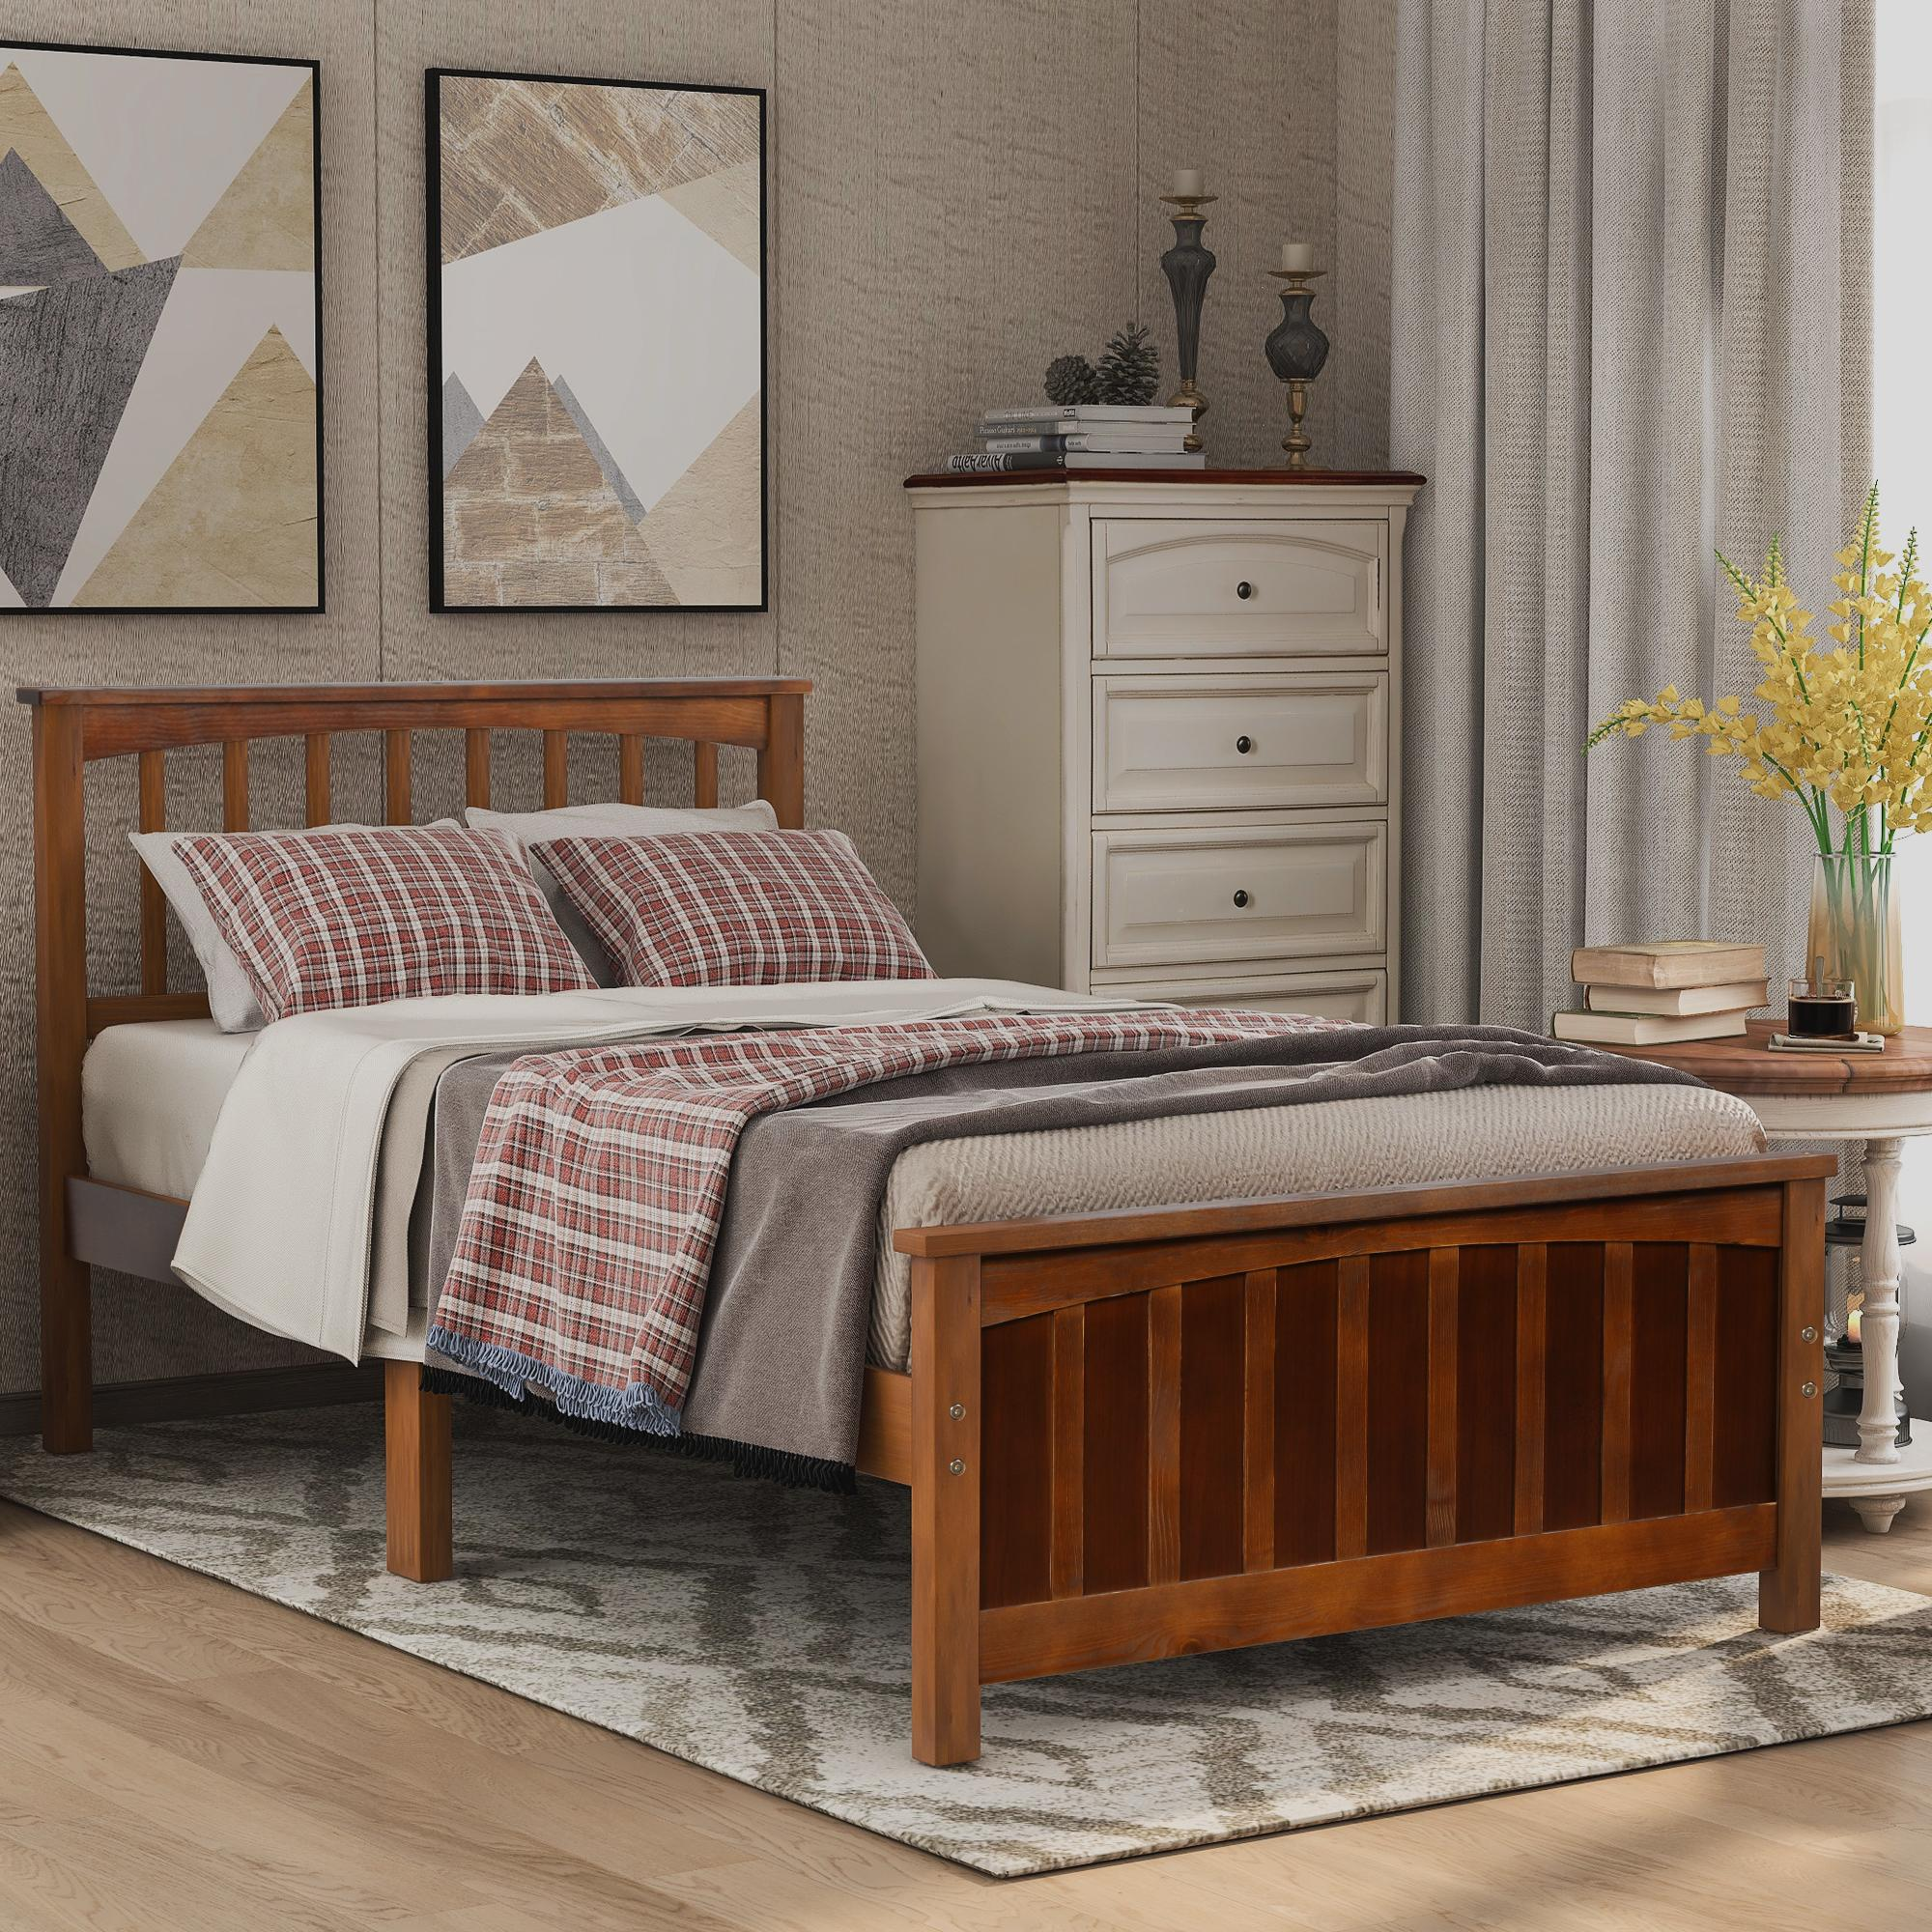 Picture of: 2020 Modern Wood Platform Bed Twin Size Bed Headboard Footboard Walnut White Espresso Bedroom Furniture Fast Shipping From Greatfurnishing 175 48 Dhgate Com